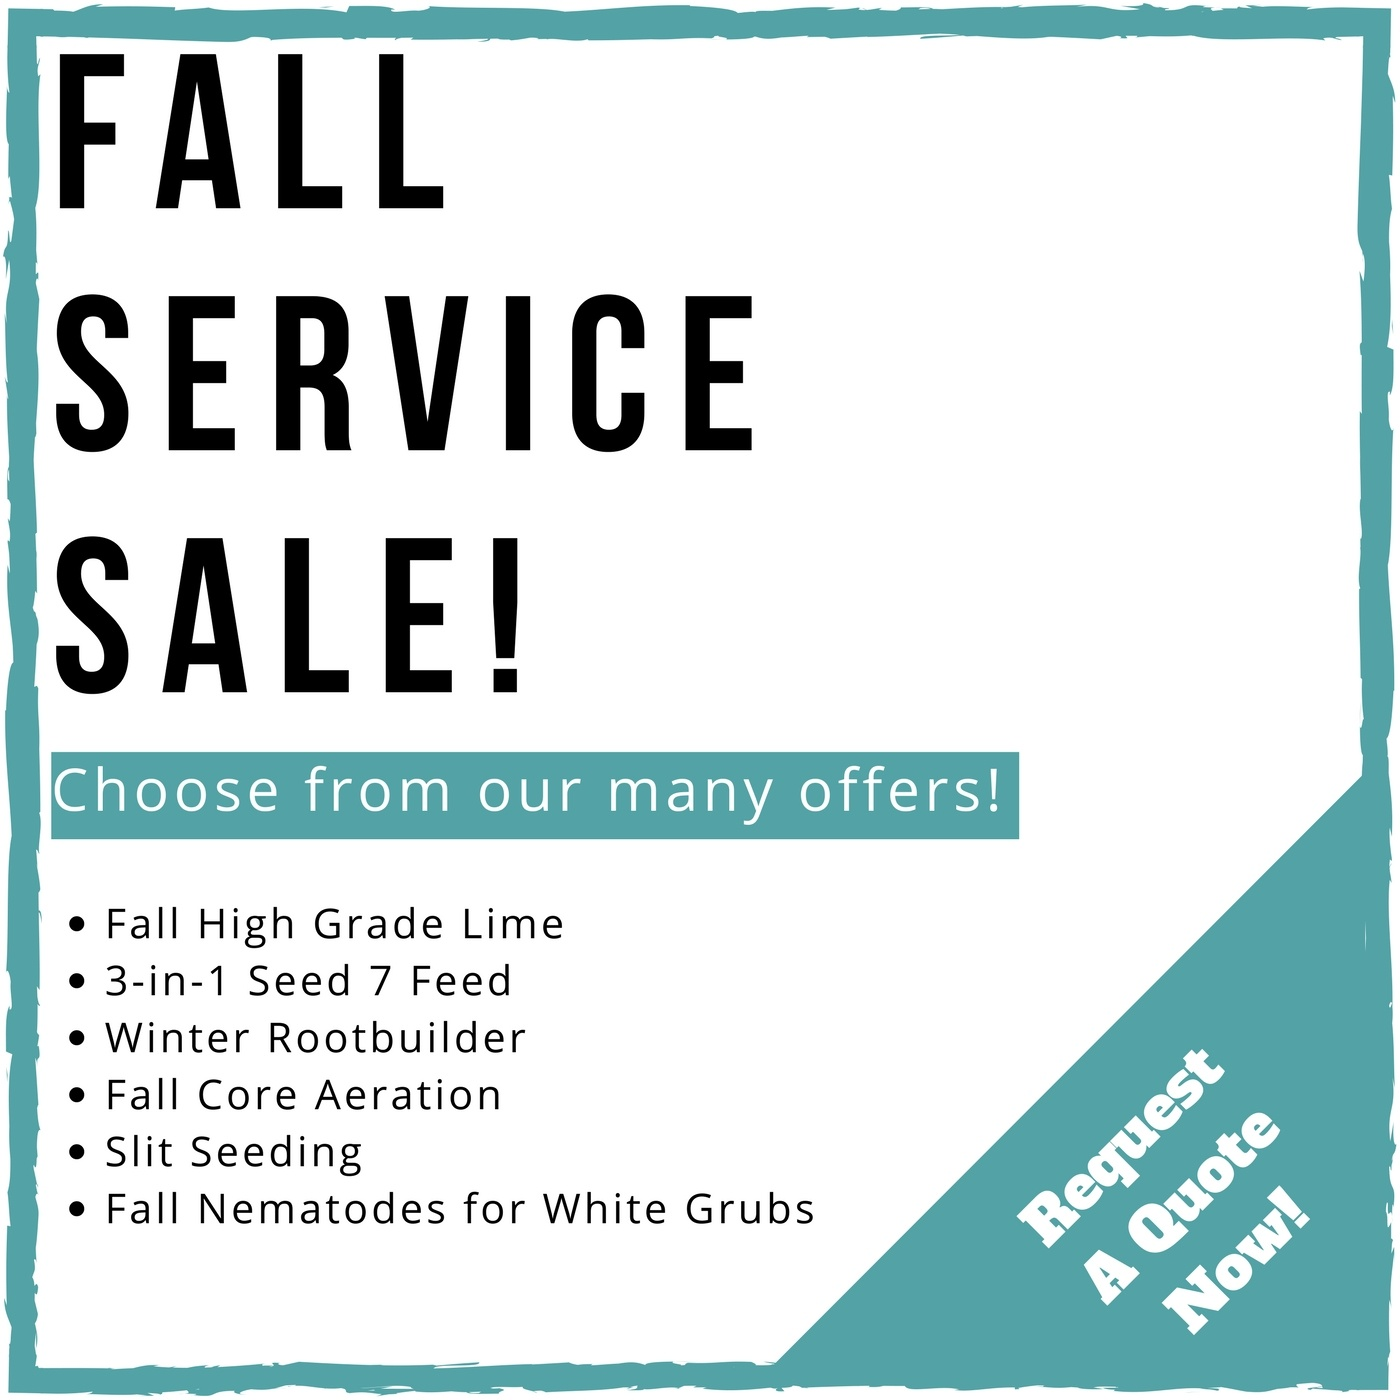 NL-Vancouver-2017-Fall-Service-Sale.jpg